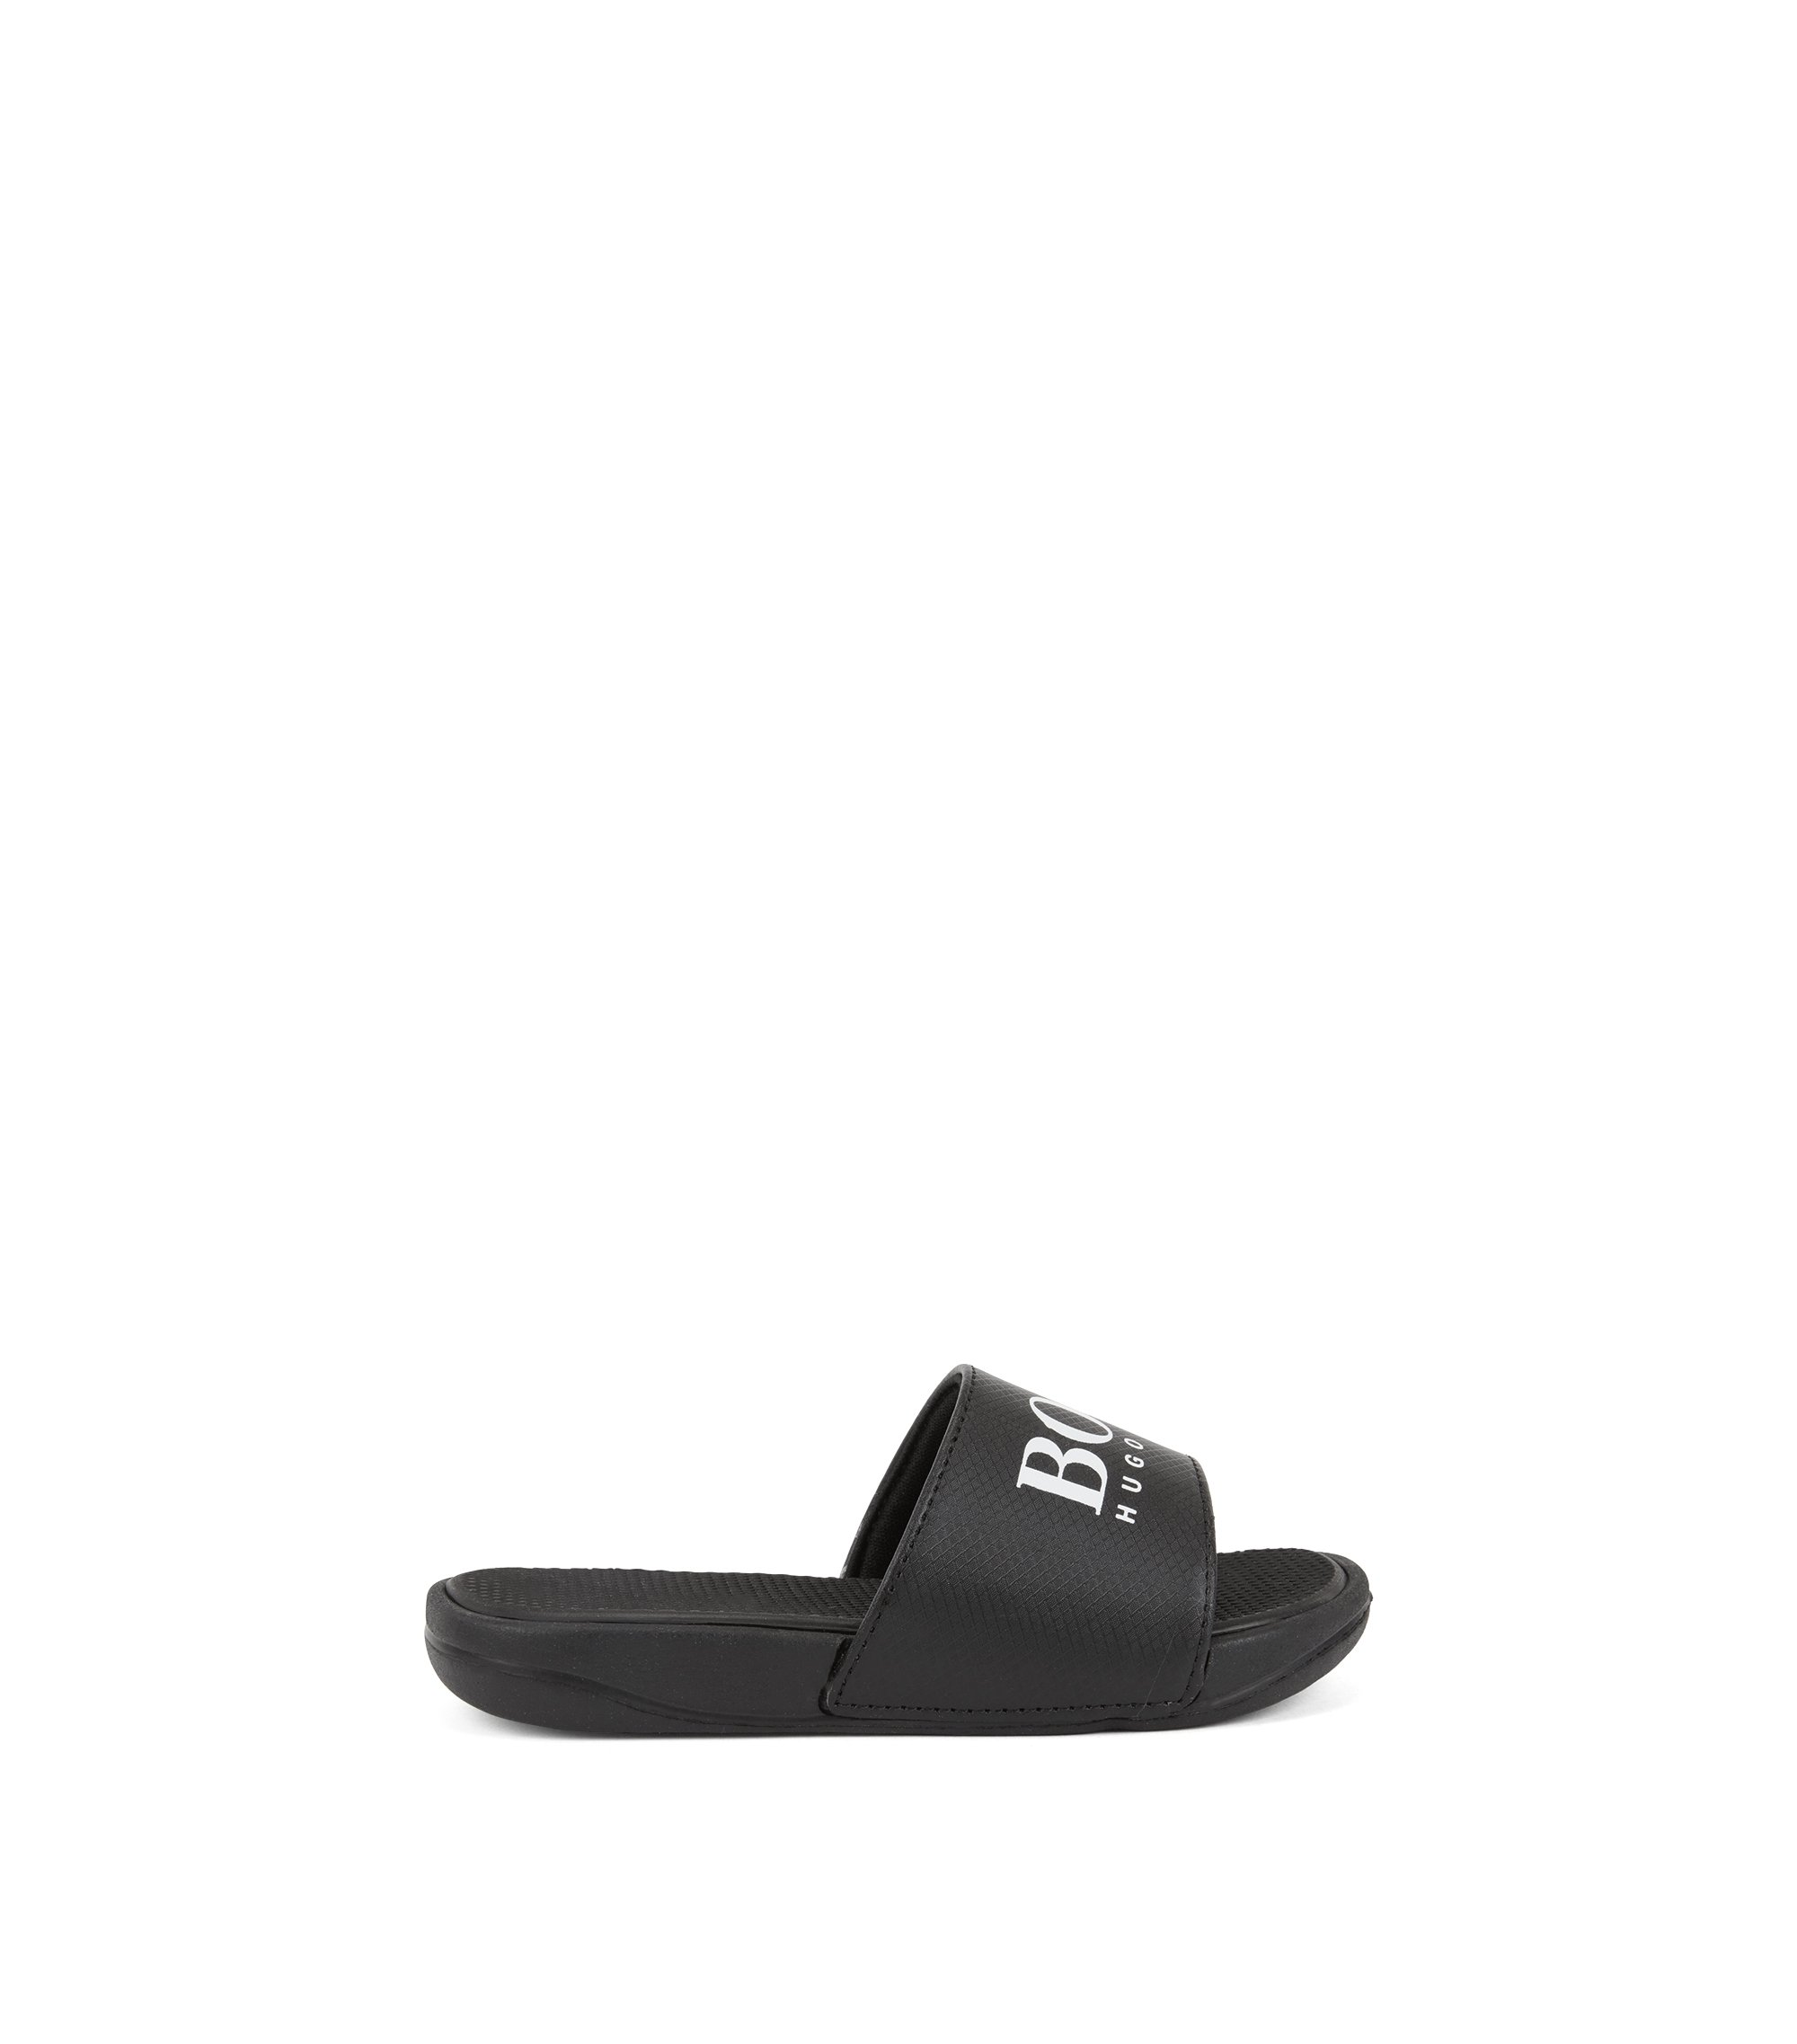 Kids' slide sandals with contrast logo, Black